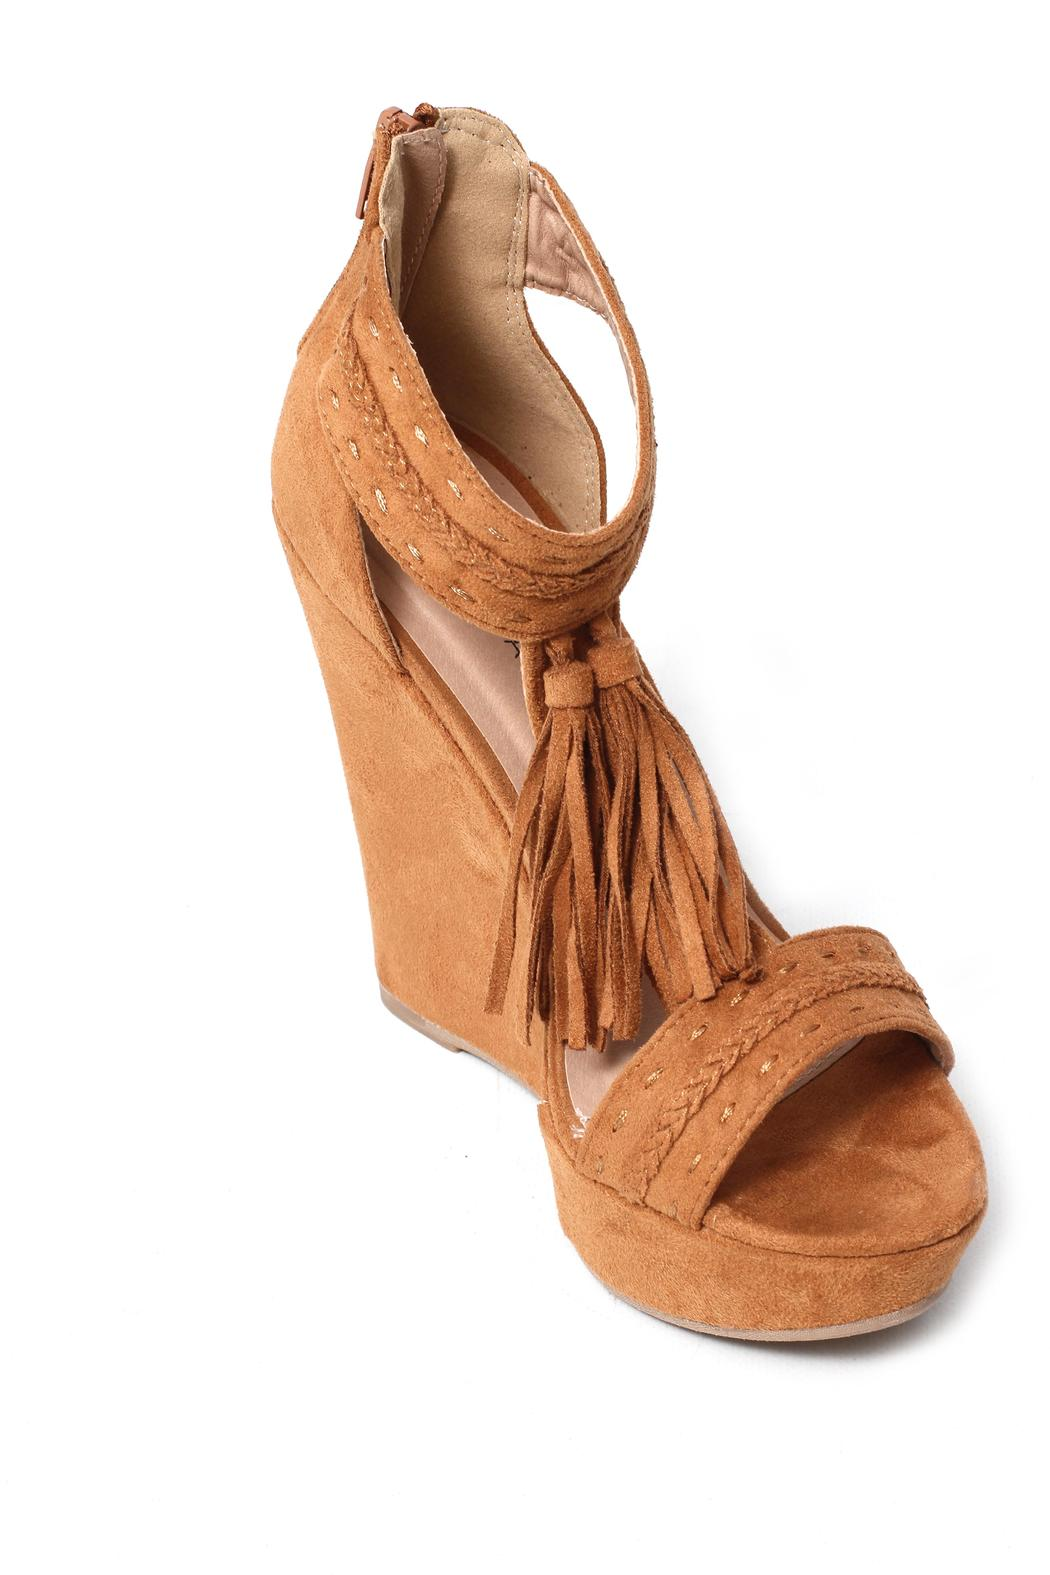 Wild Diva Fringed Suede Wedge - Front Full Image